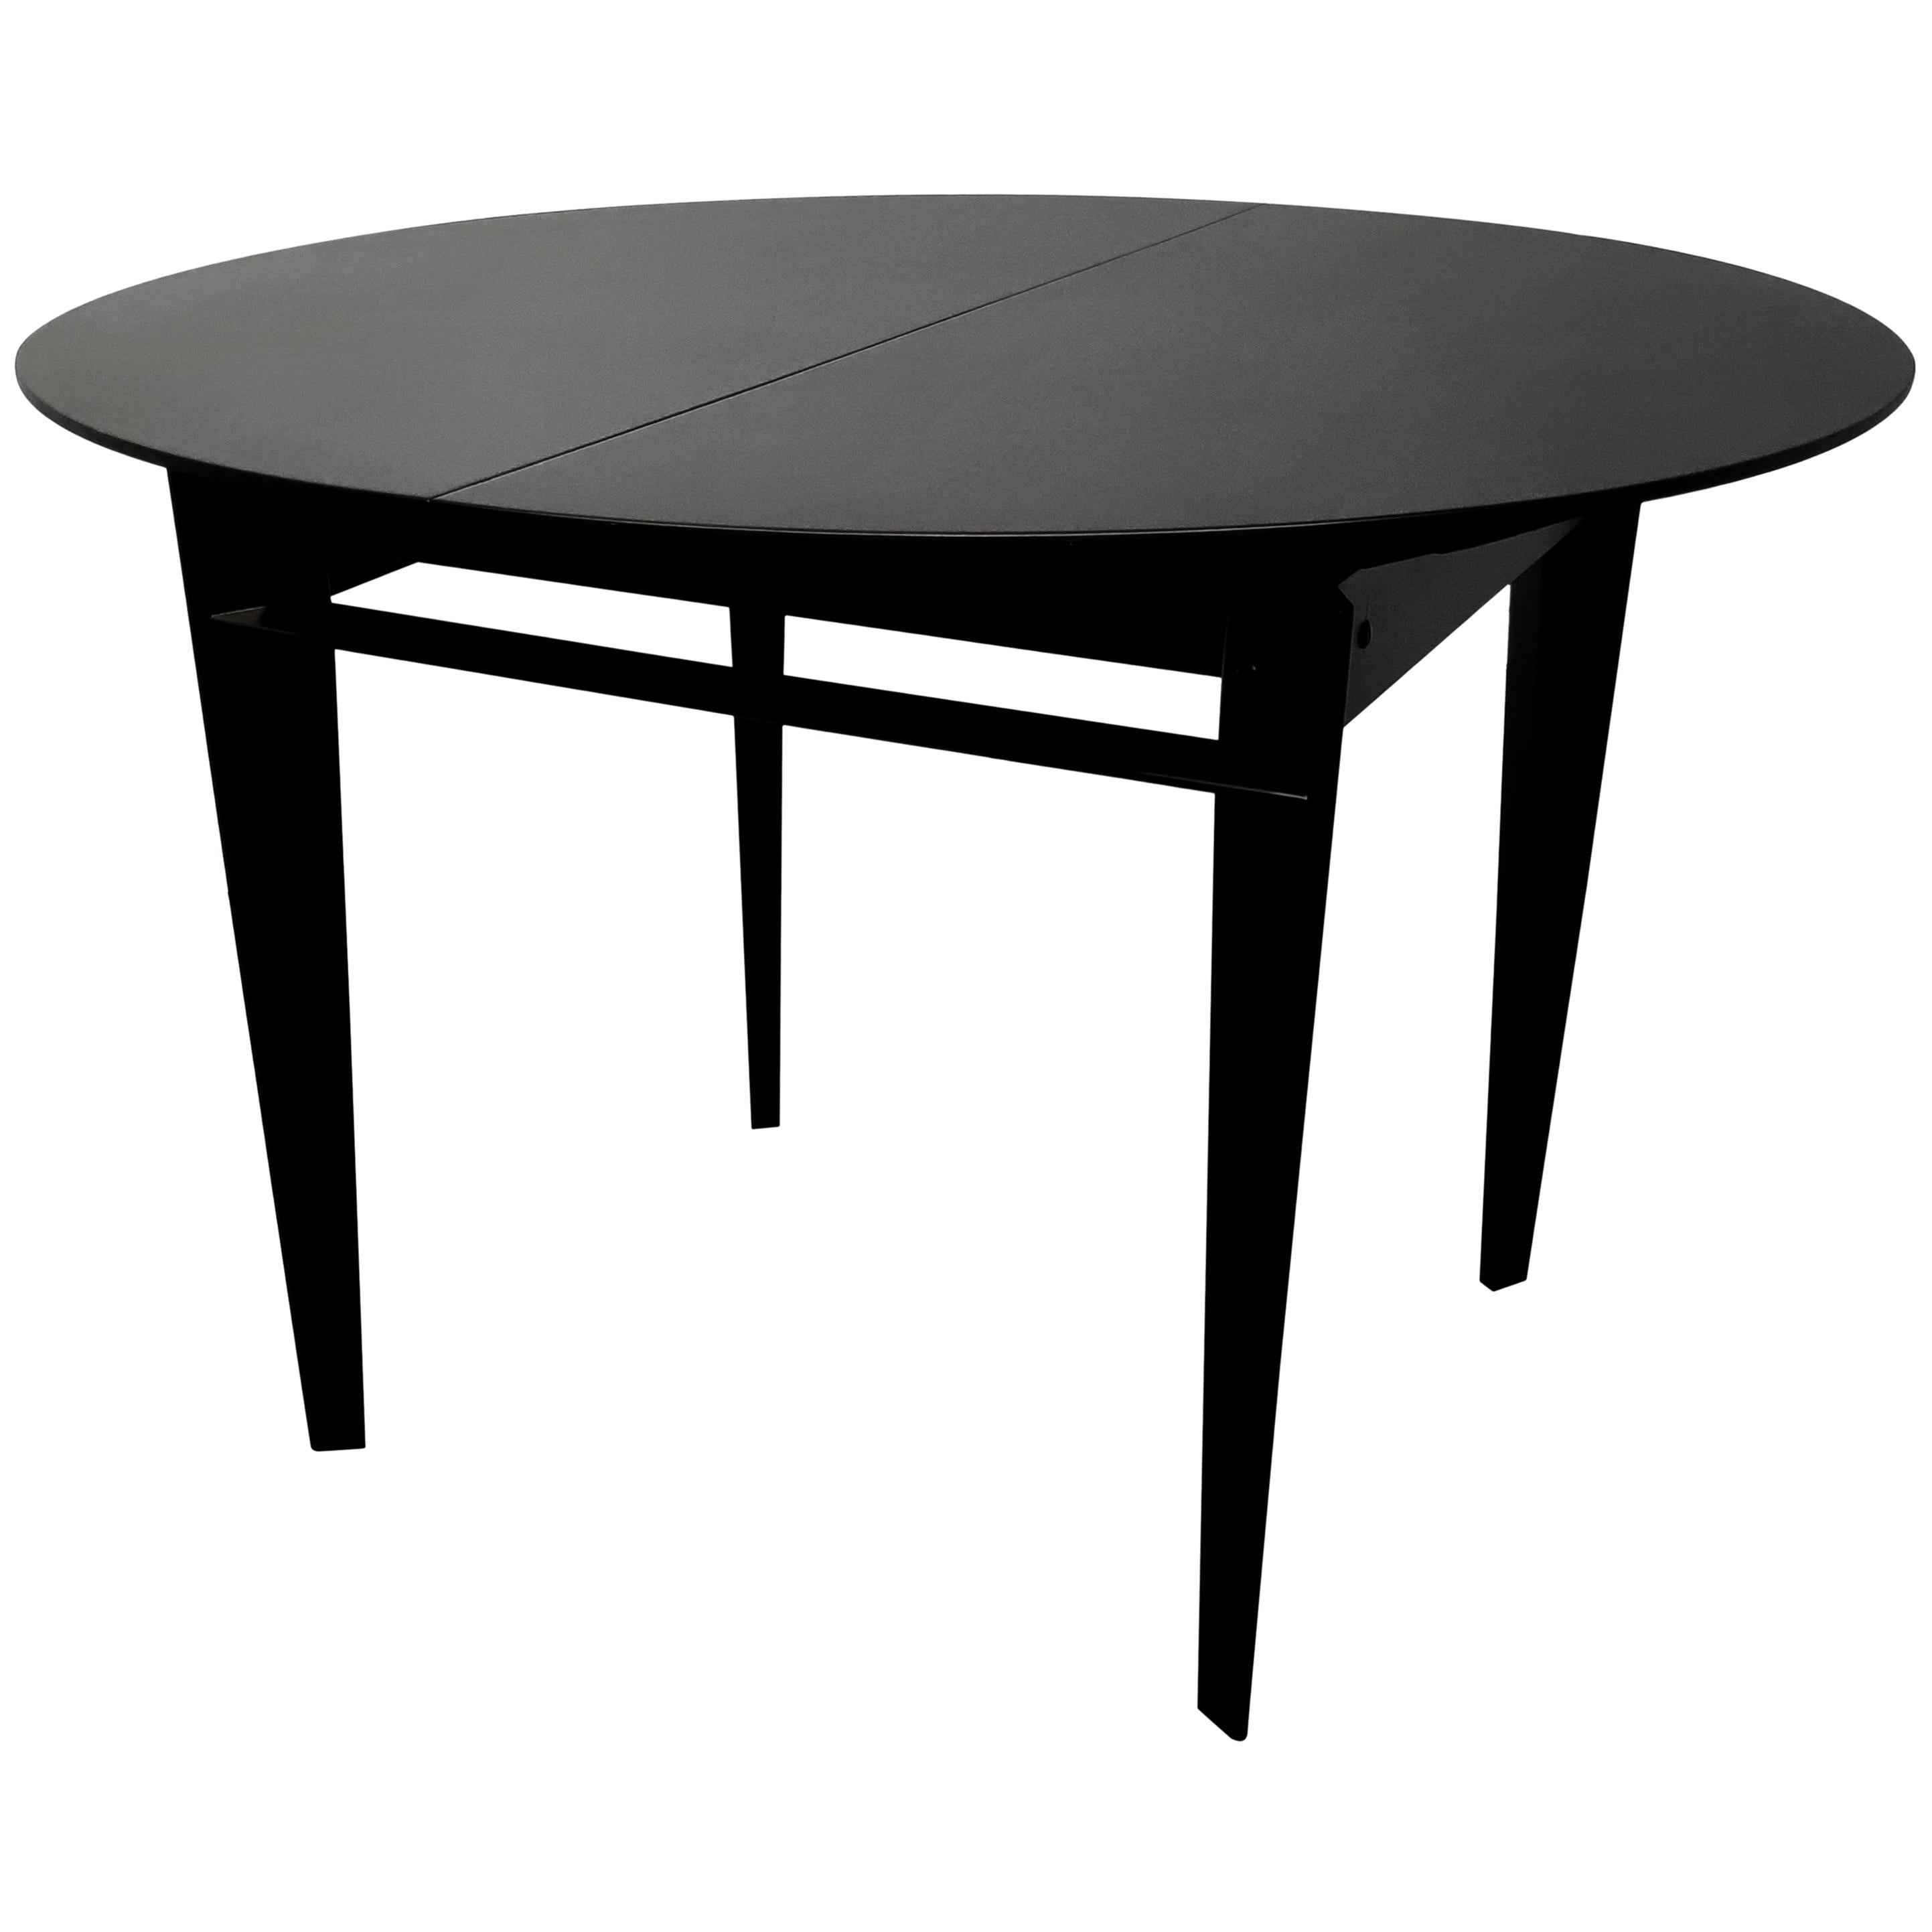 Italian Midcentury Extendable Dining Table by Vittorio Dassi, 1950s